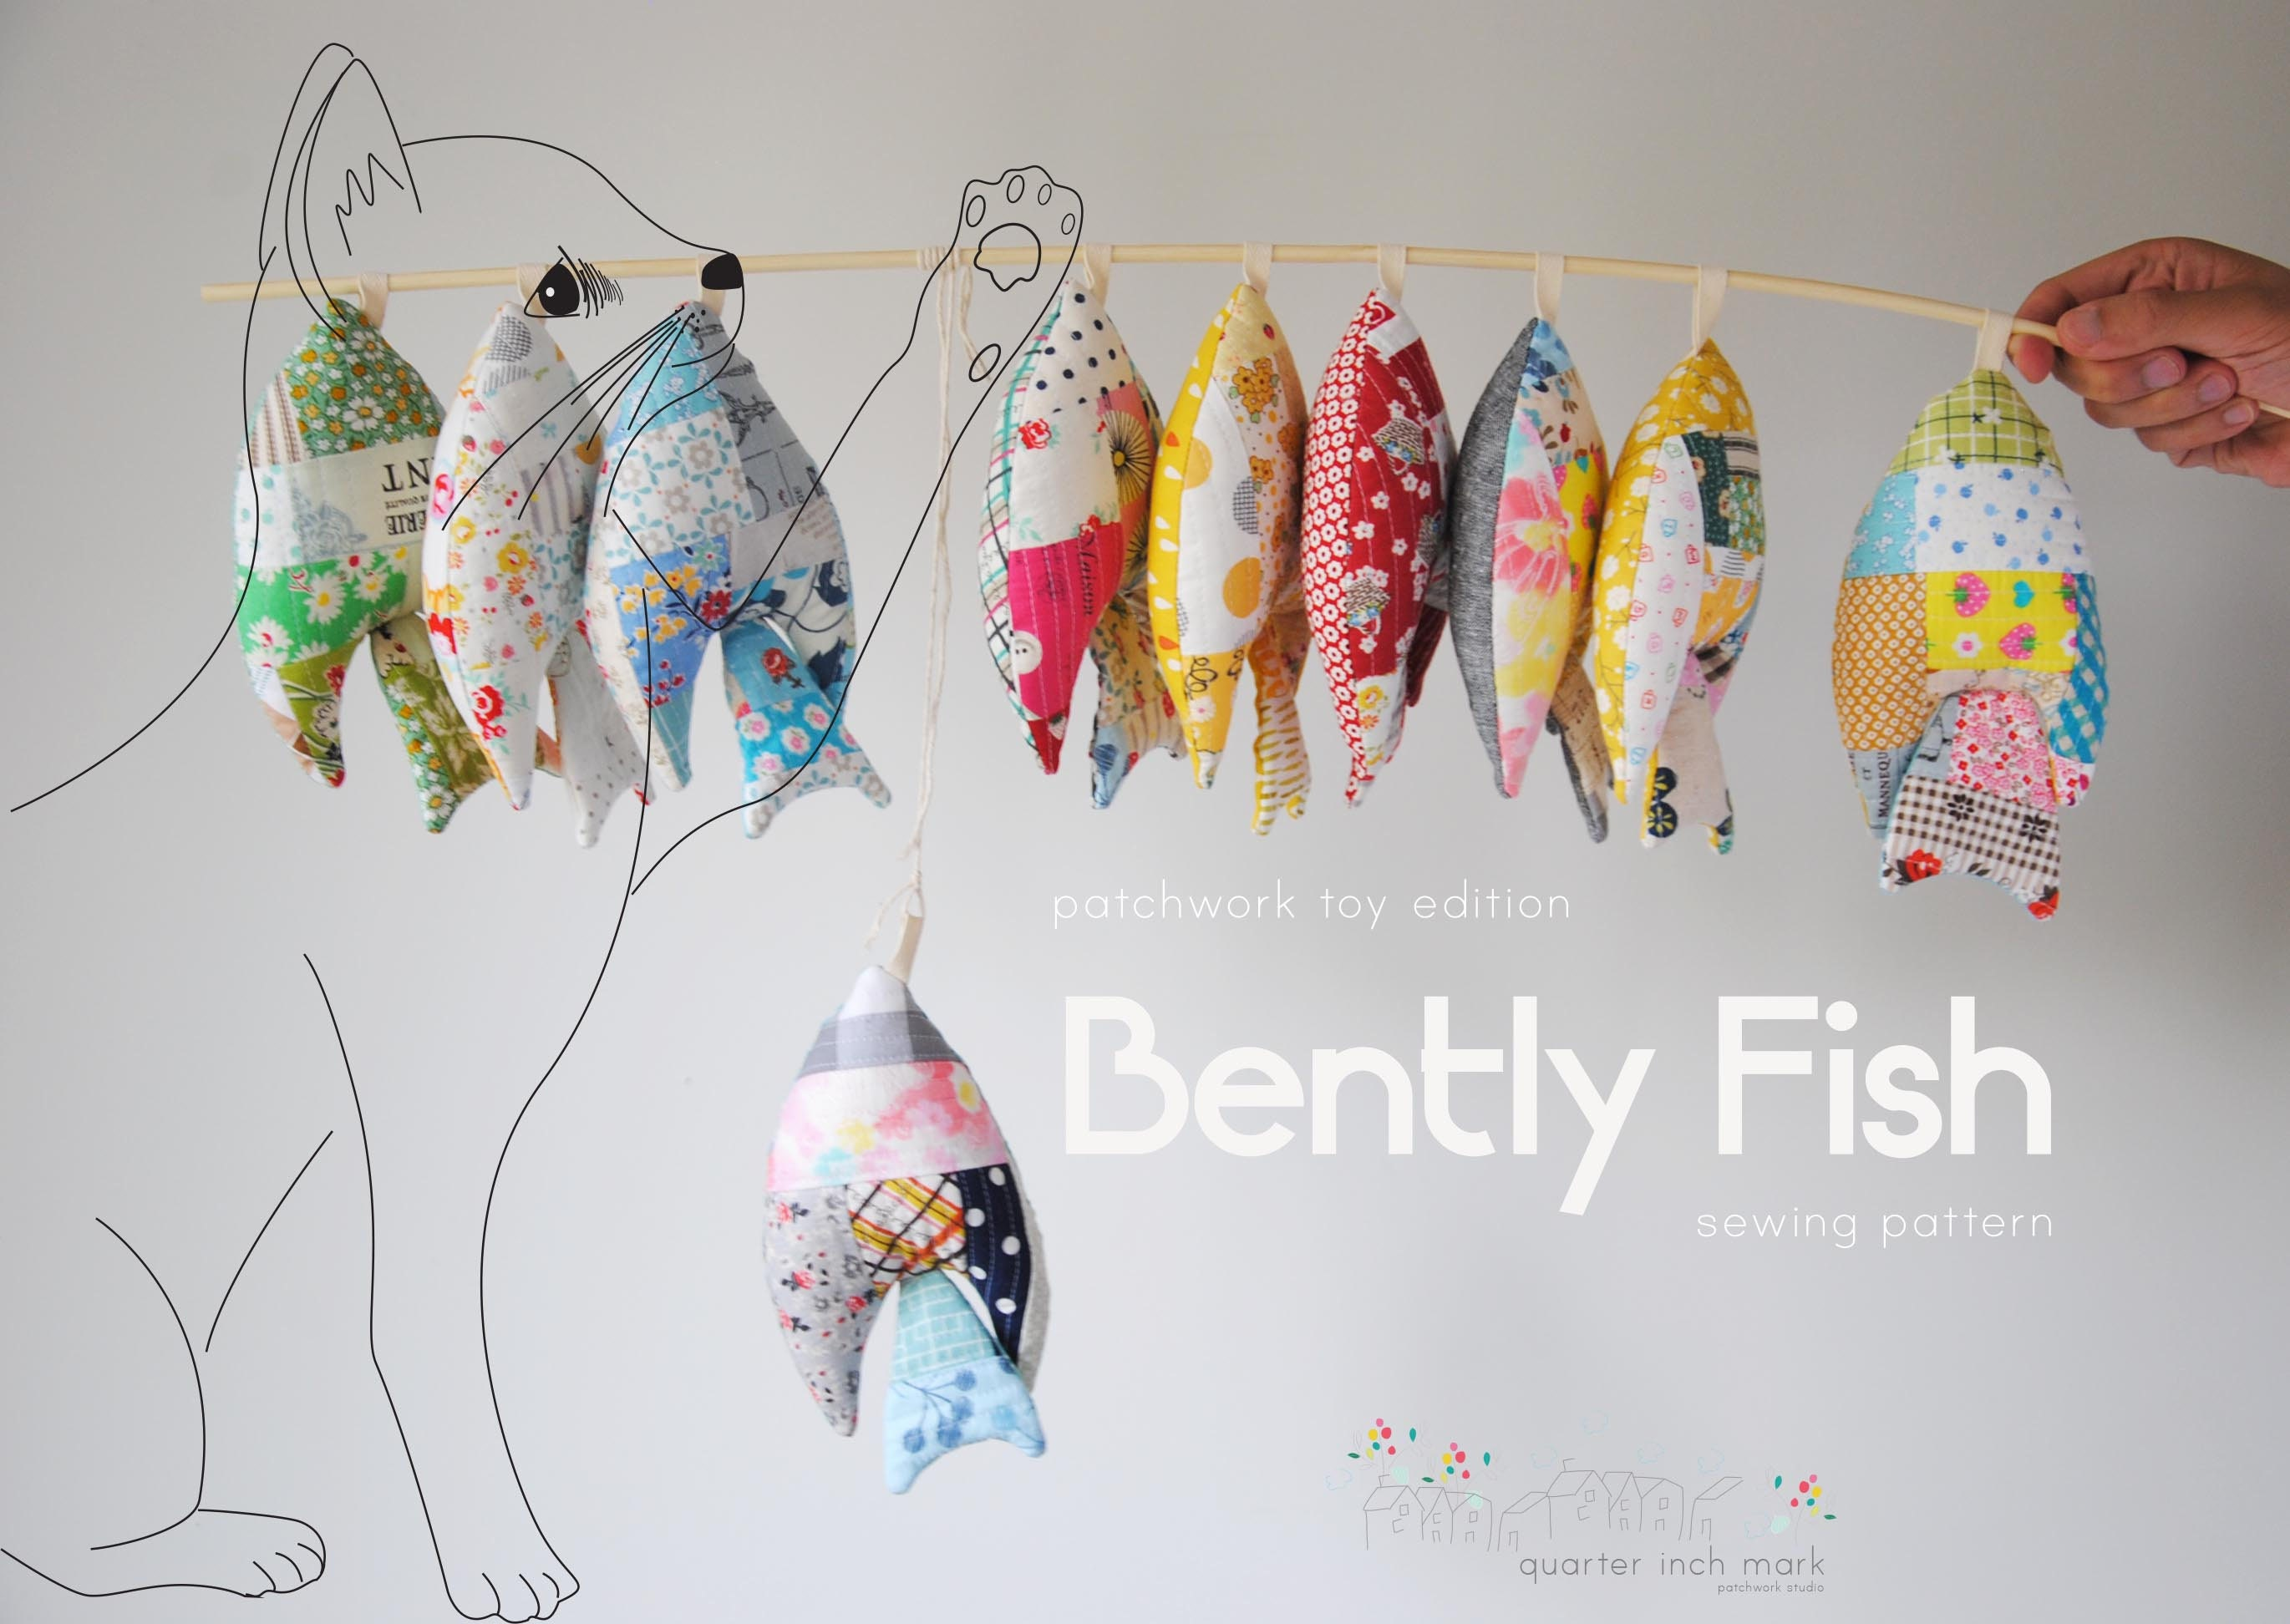 Bently fish patchwork toy sewing patternpdf zoom jeuxipadfo Image collections